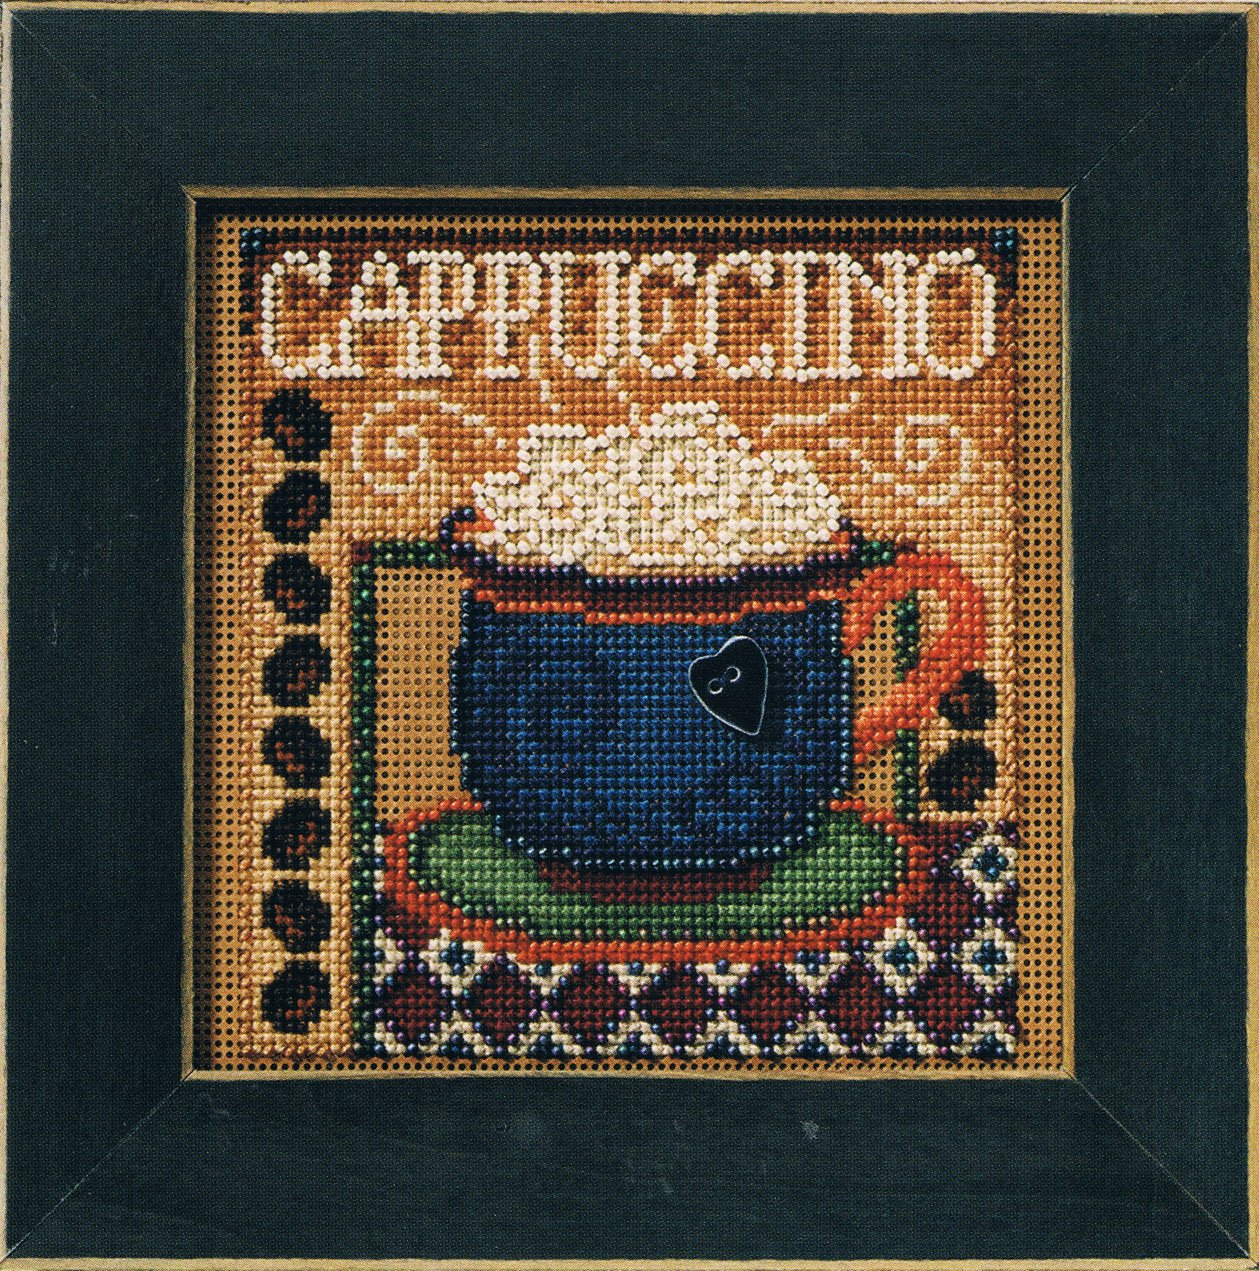 Cappuccino Beaded Counted Cross Stitch Kit MH14-8202 Mill Hill Buttons /& Beads 2008 Autumn